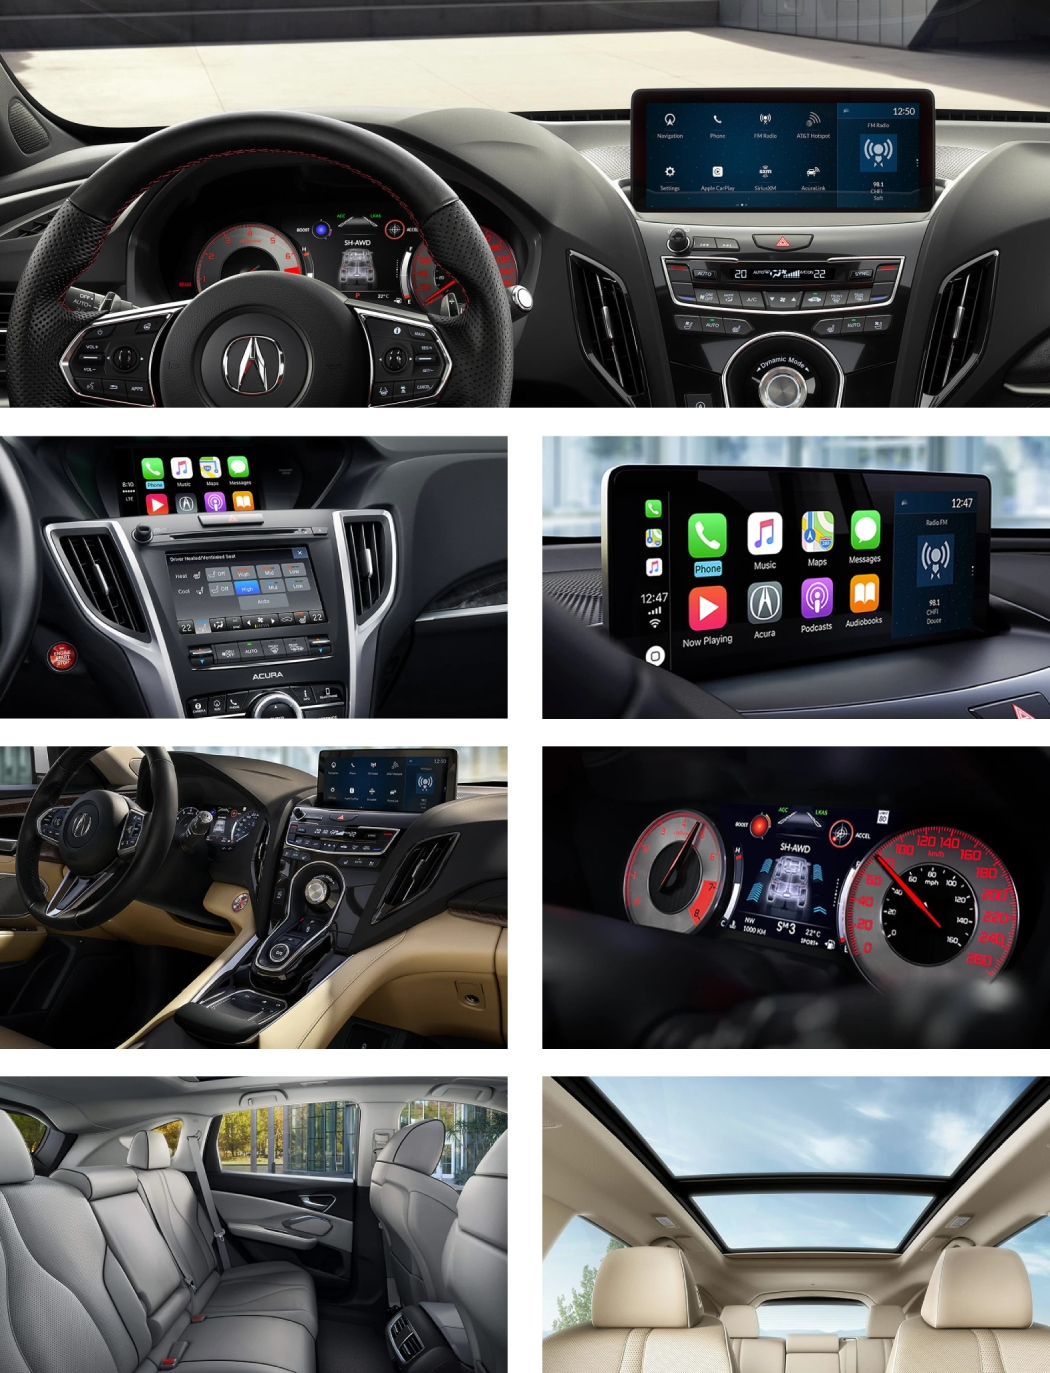 New 2020 Acura RDX Interior